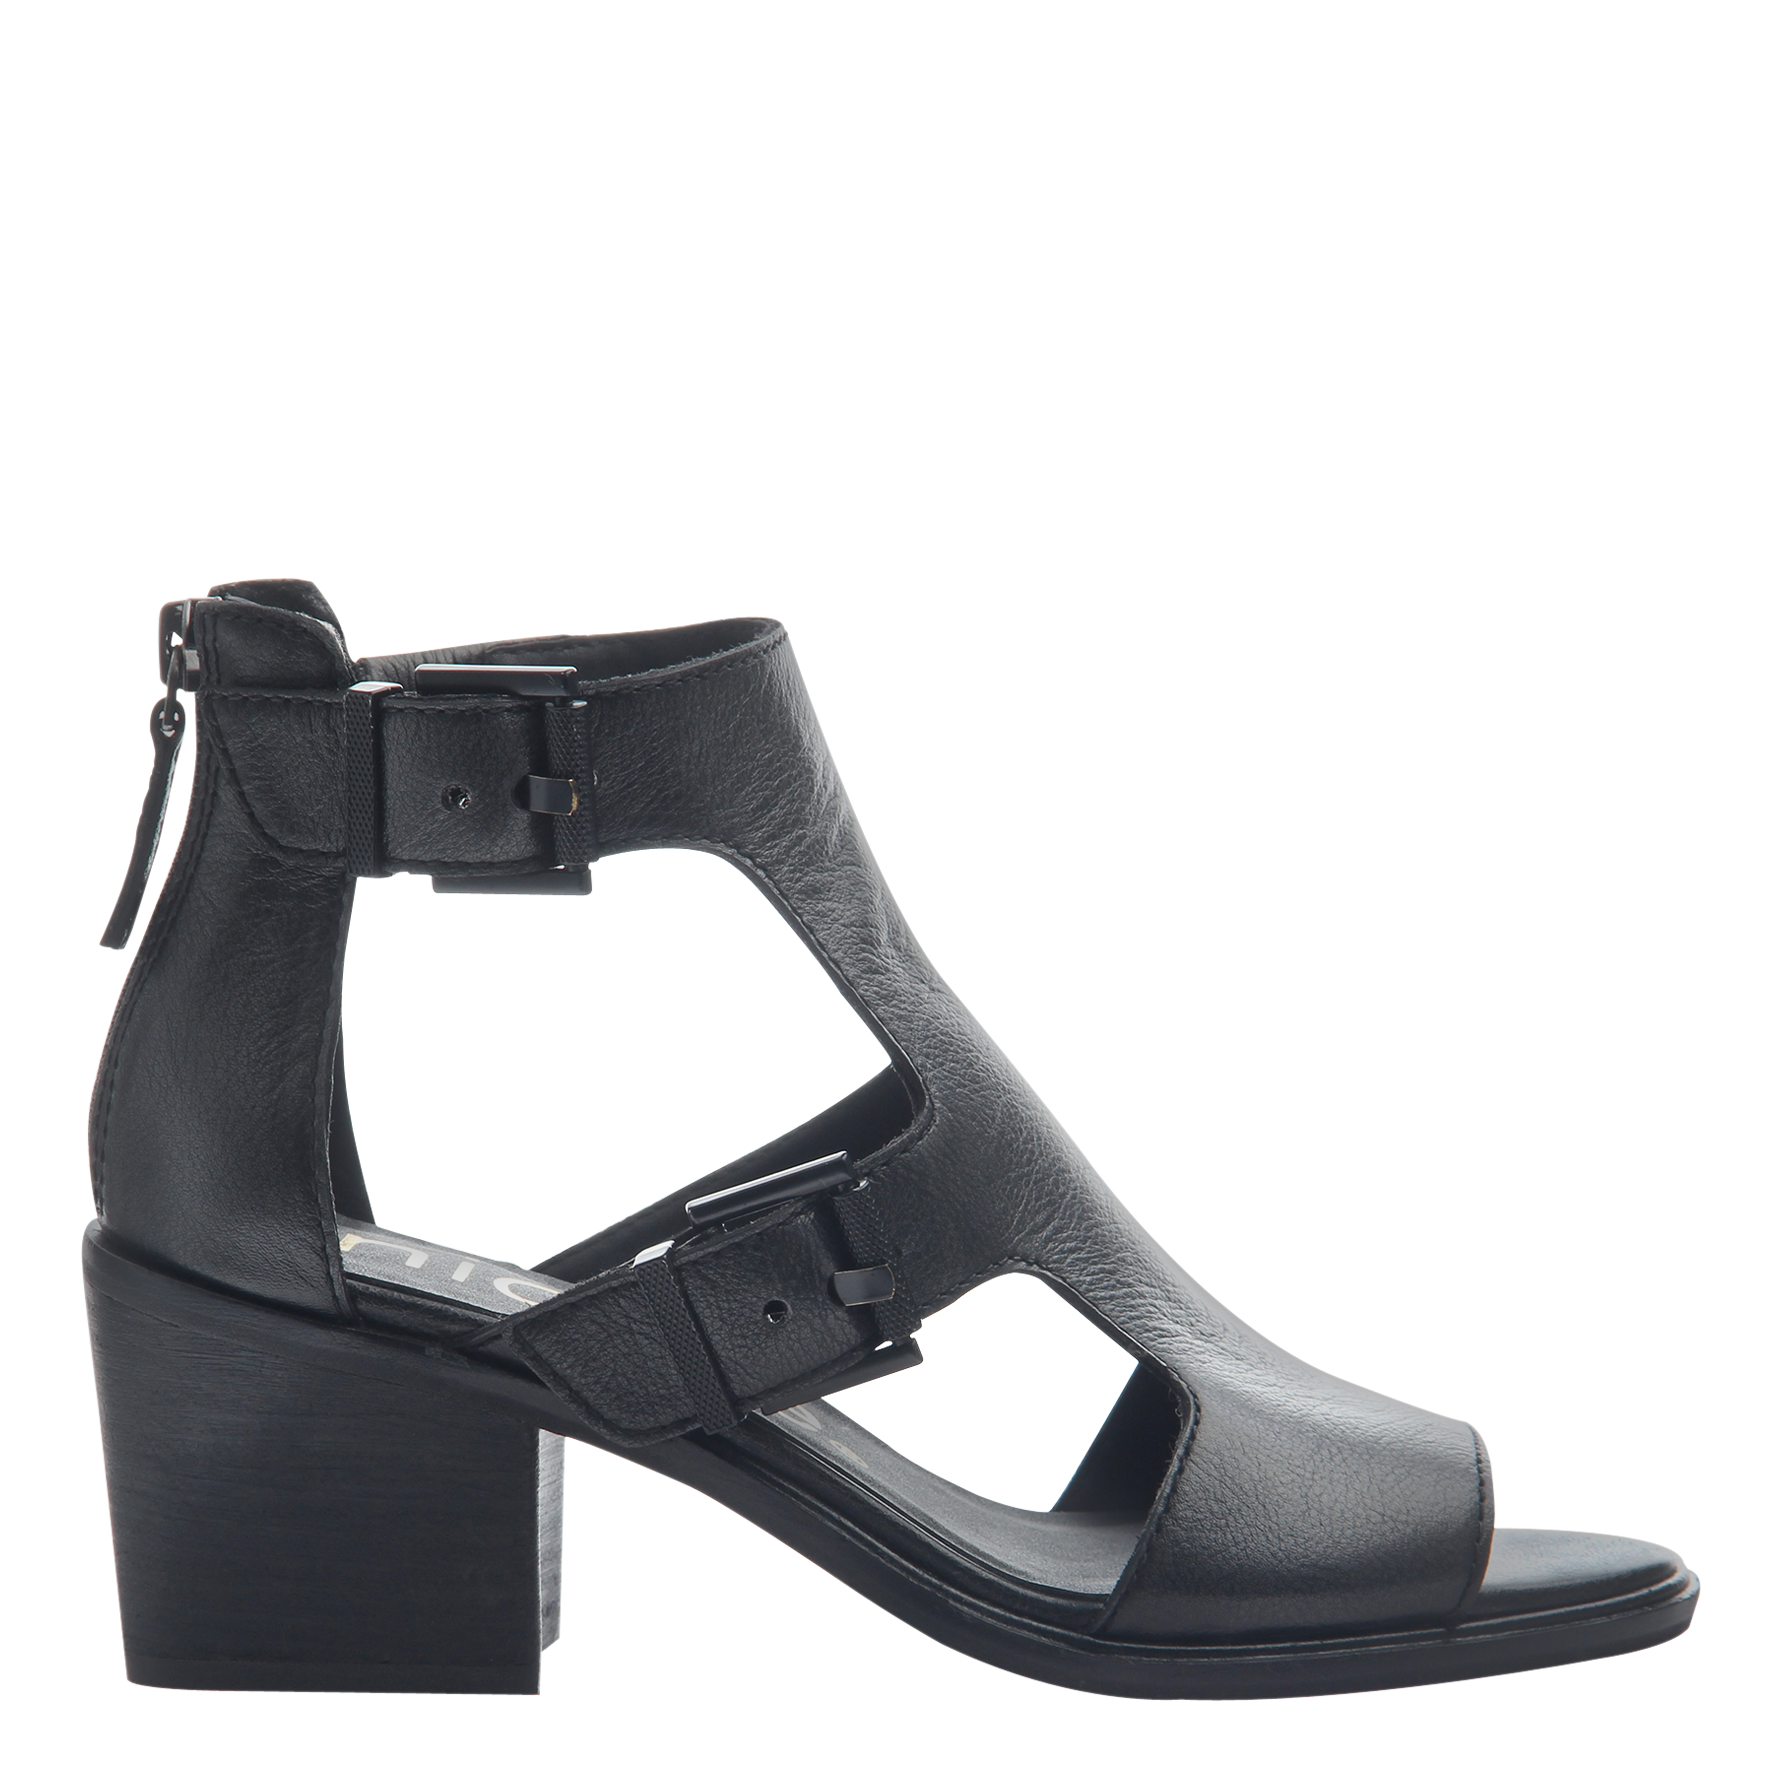 Womens heeled sandals Jahida in black side view